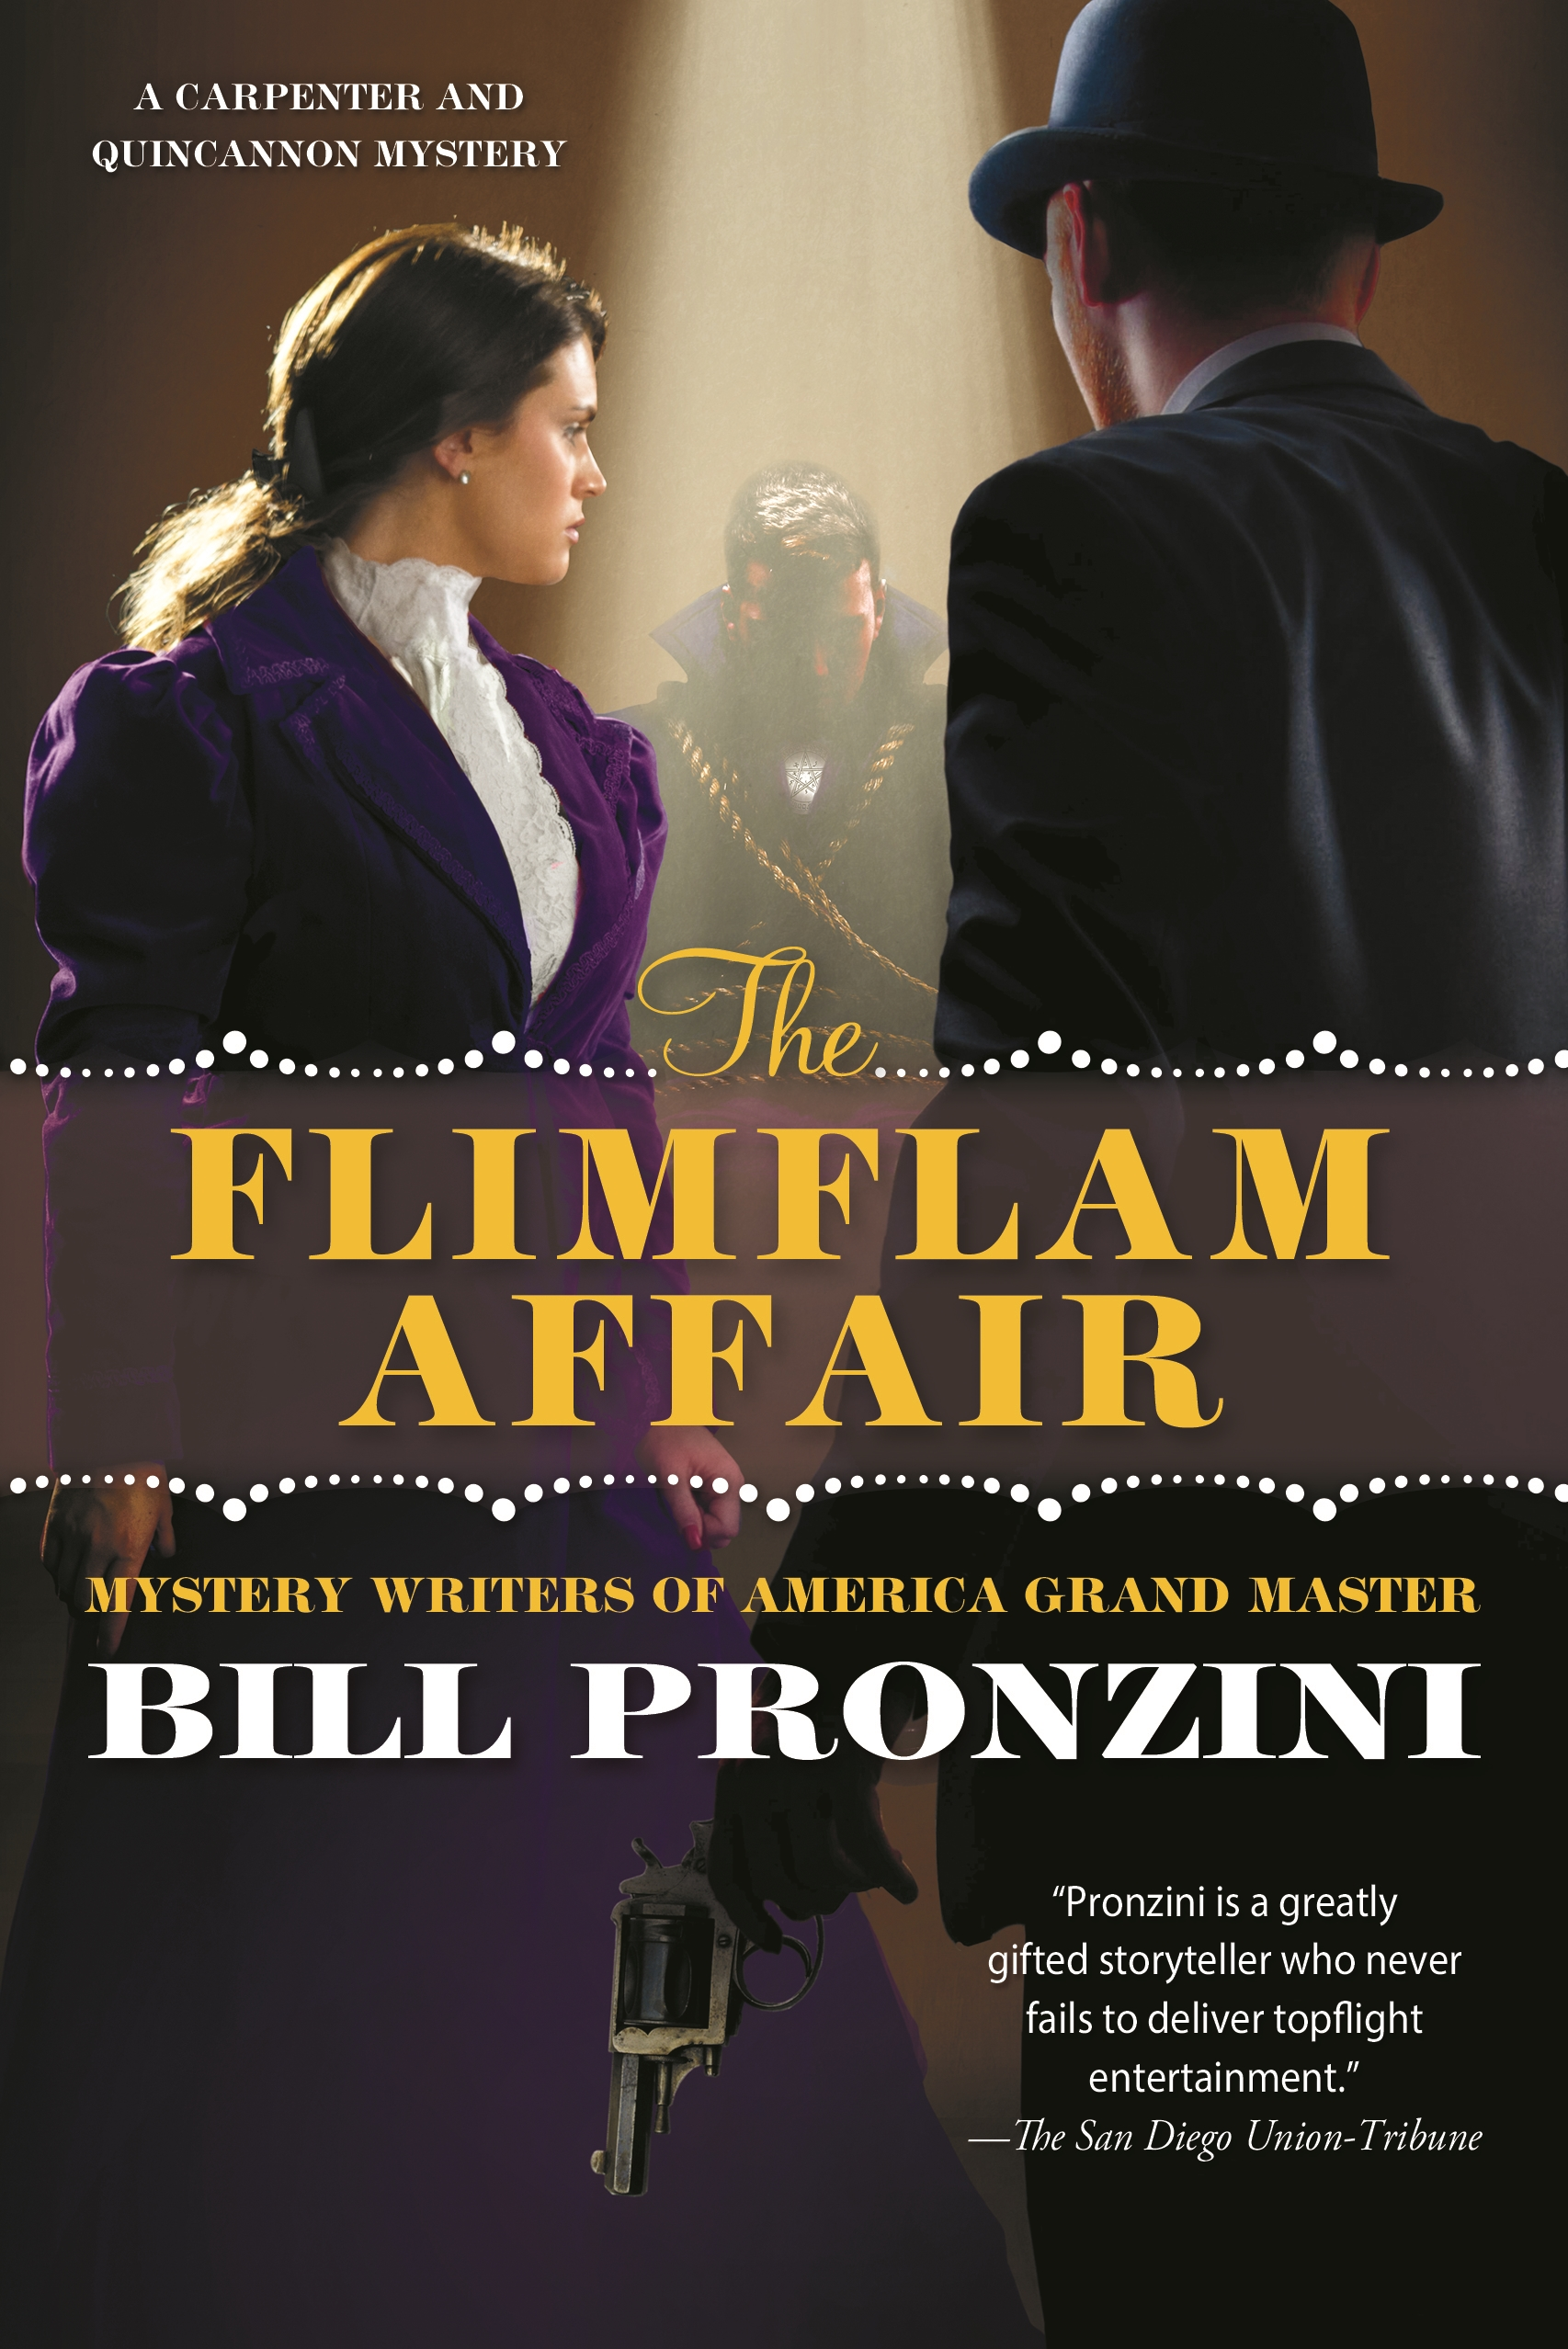 The Flimflam Affair A Carpenter and Quincannon Mystery